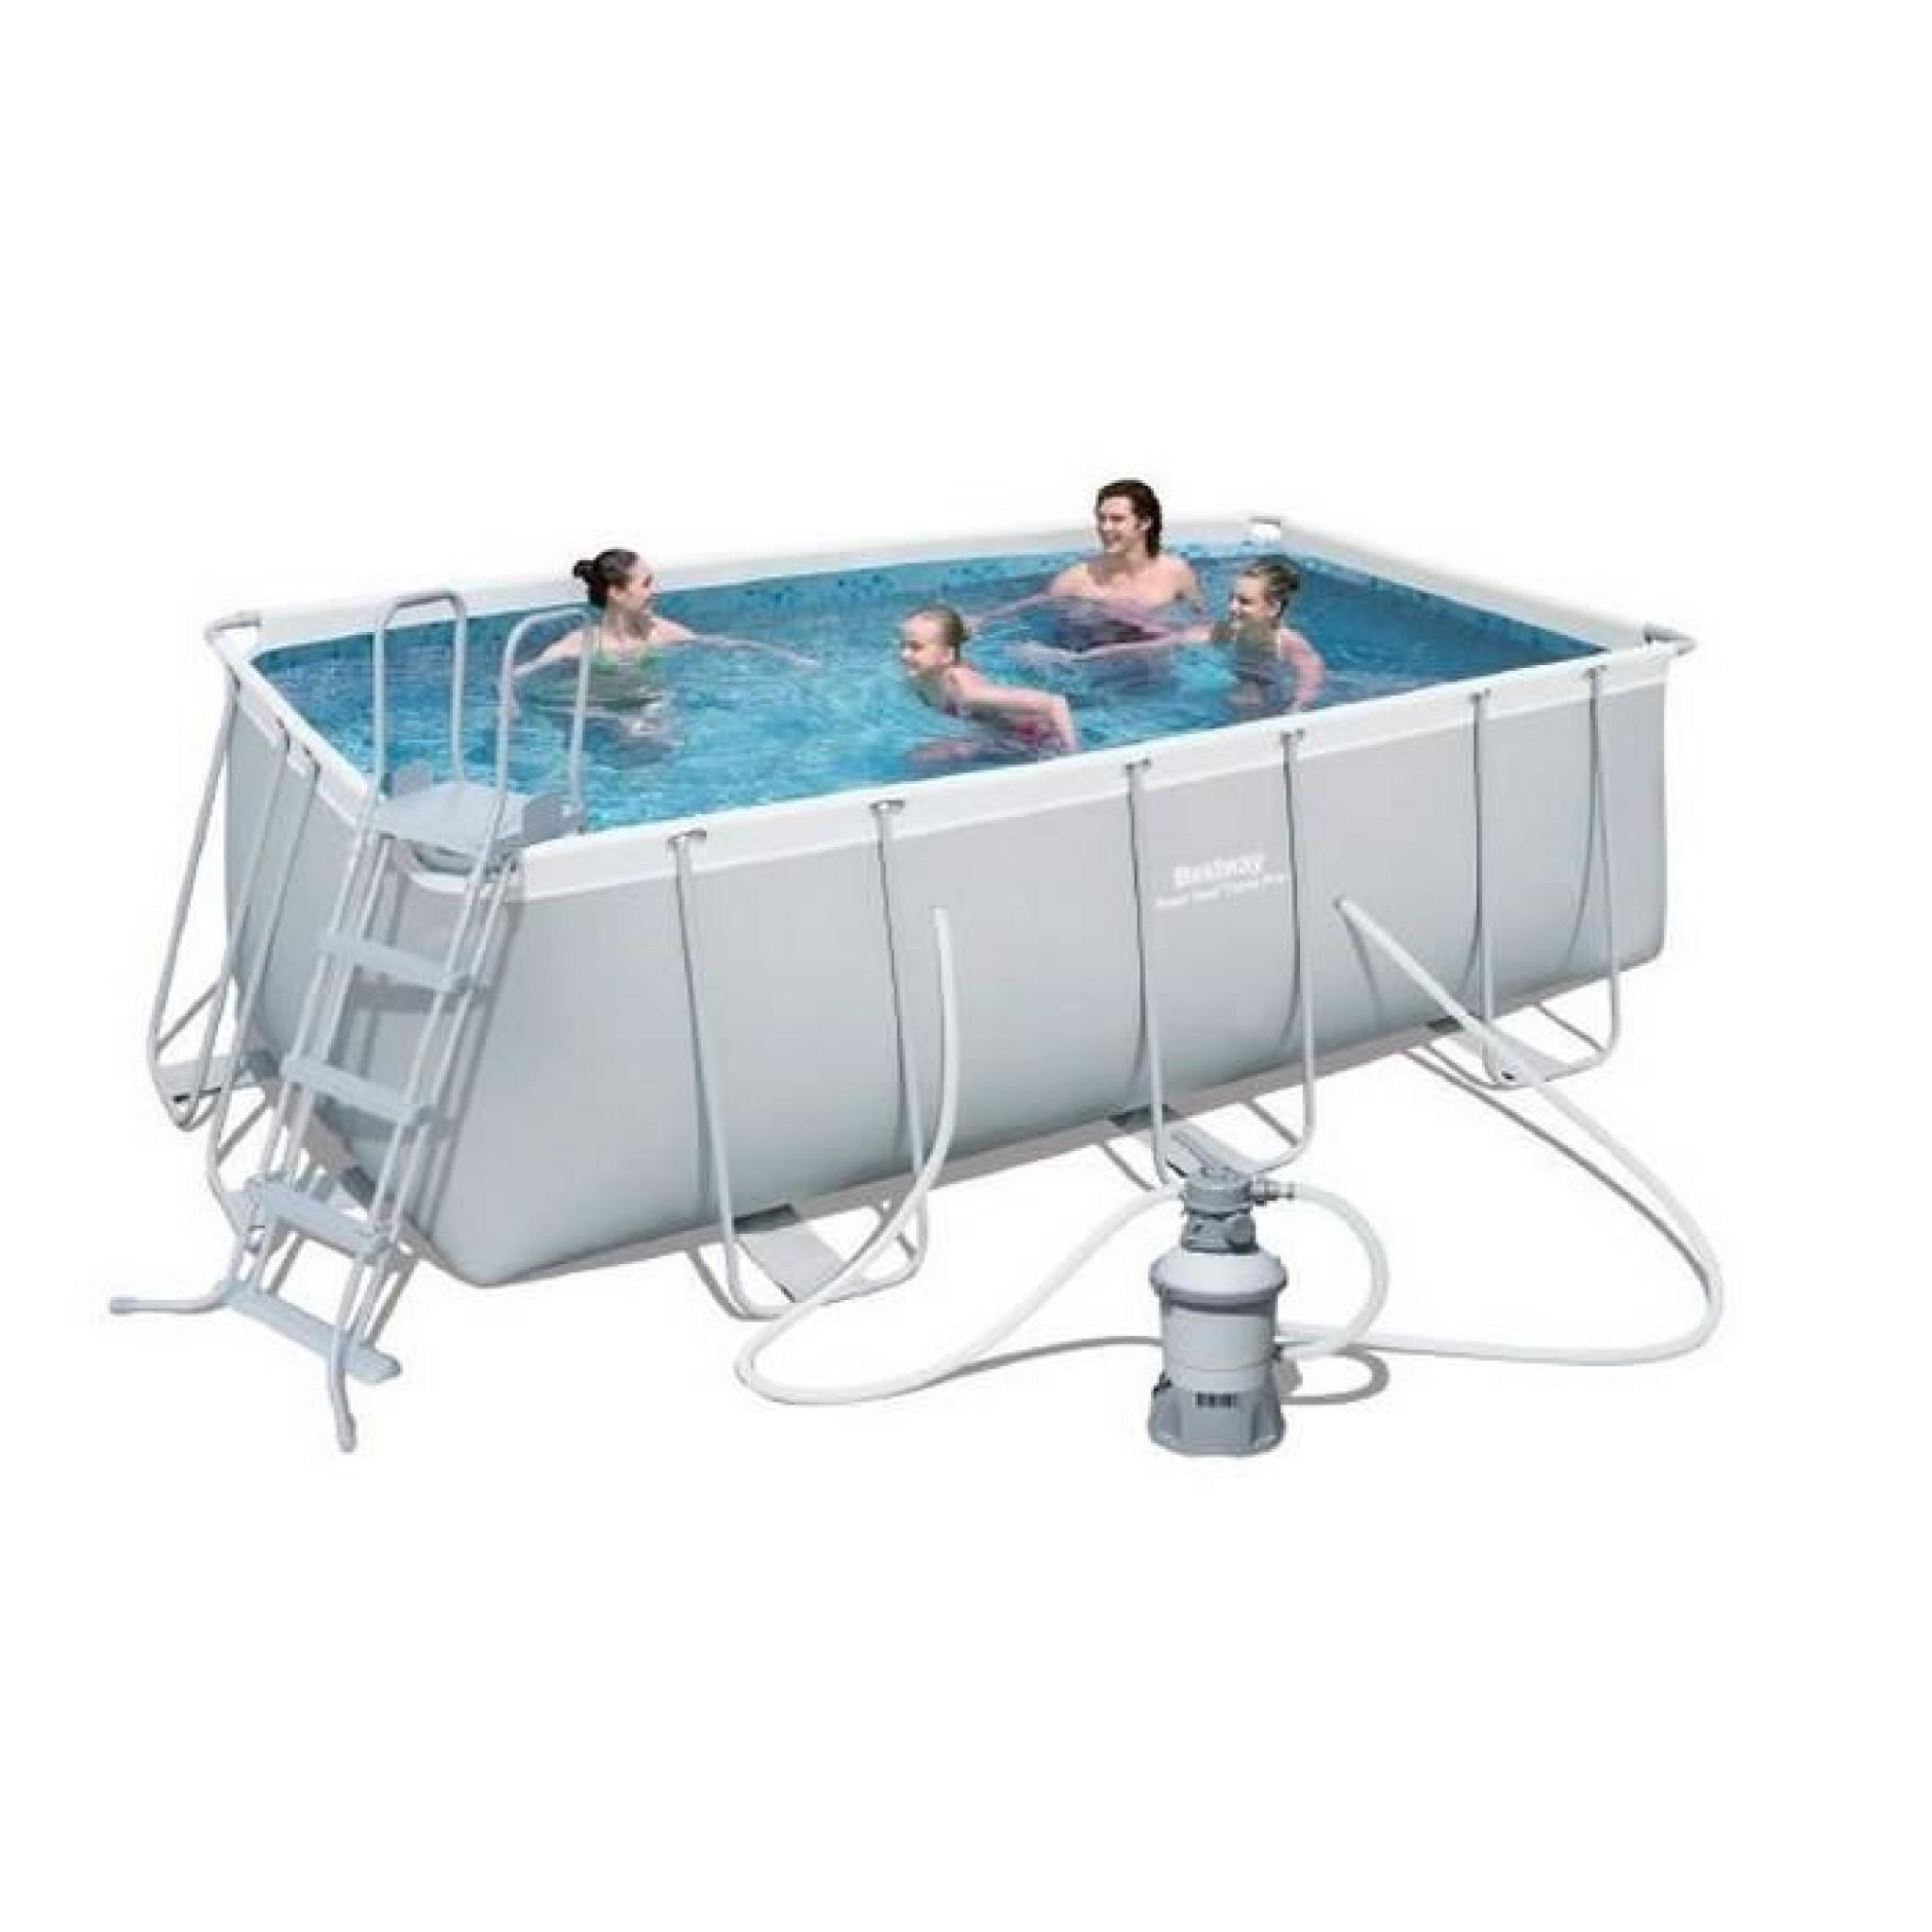 bestway piscine tubulaire rectangulaire